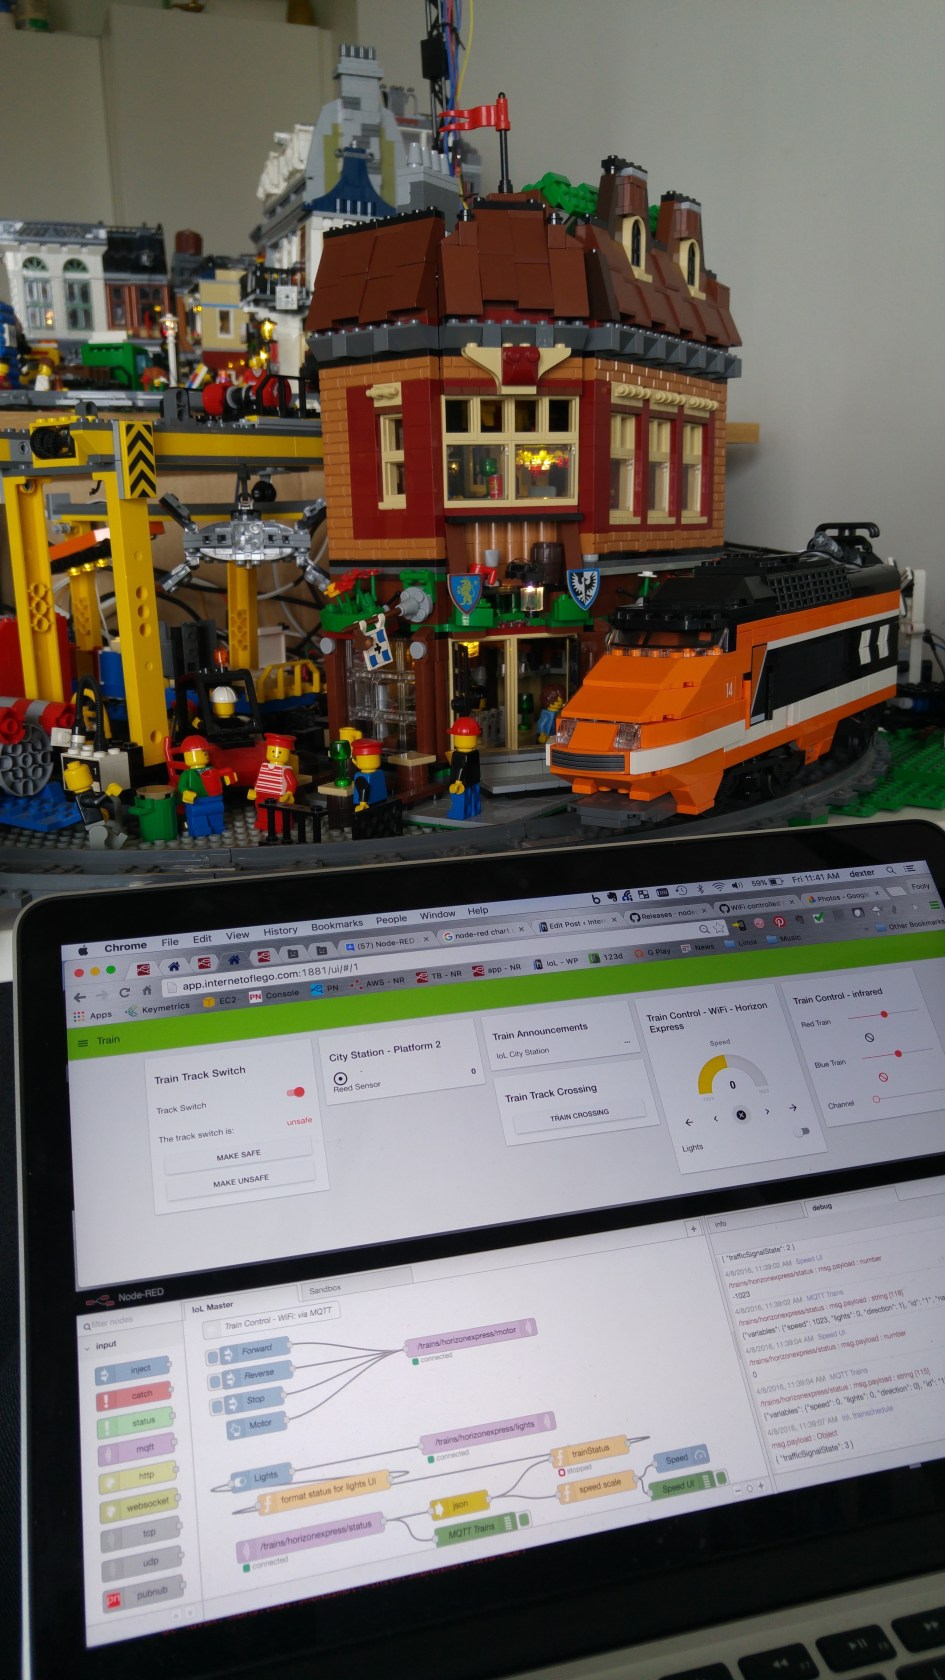 Lego Train Automation Wifi Controlled With Nodemcu Esp8266 Model Locomotive Infrared Controller Circuit Electronic The Remote Is Out Of View But It Needs To Be Stopped How Can We Control A If You Cant See